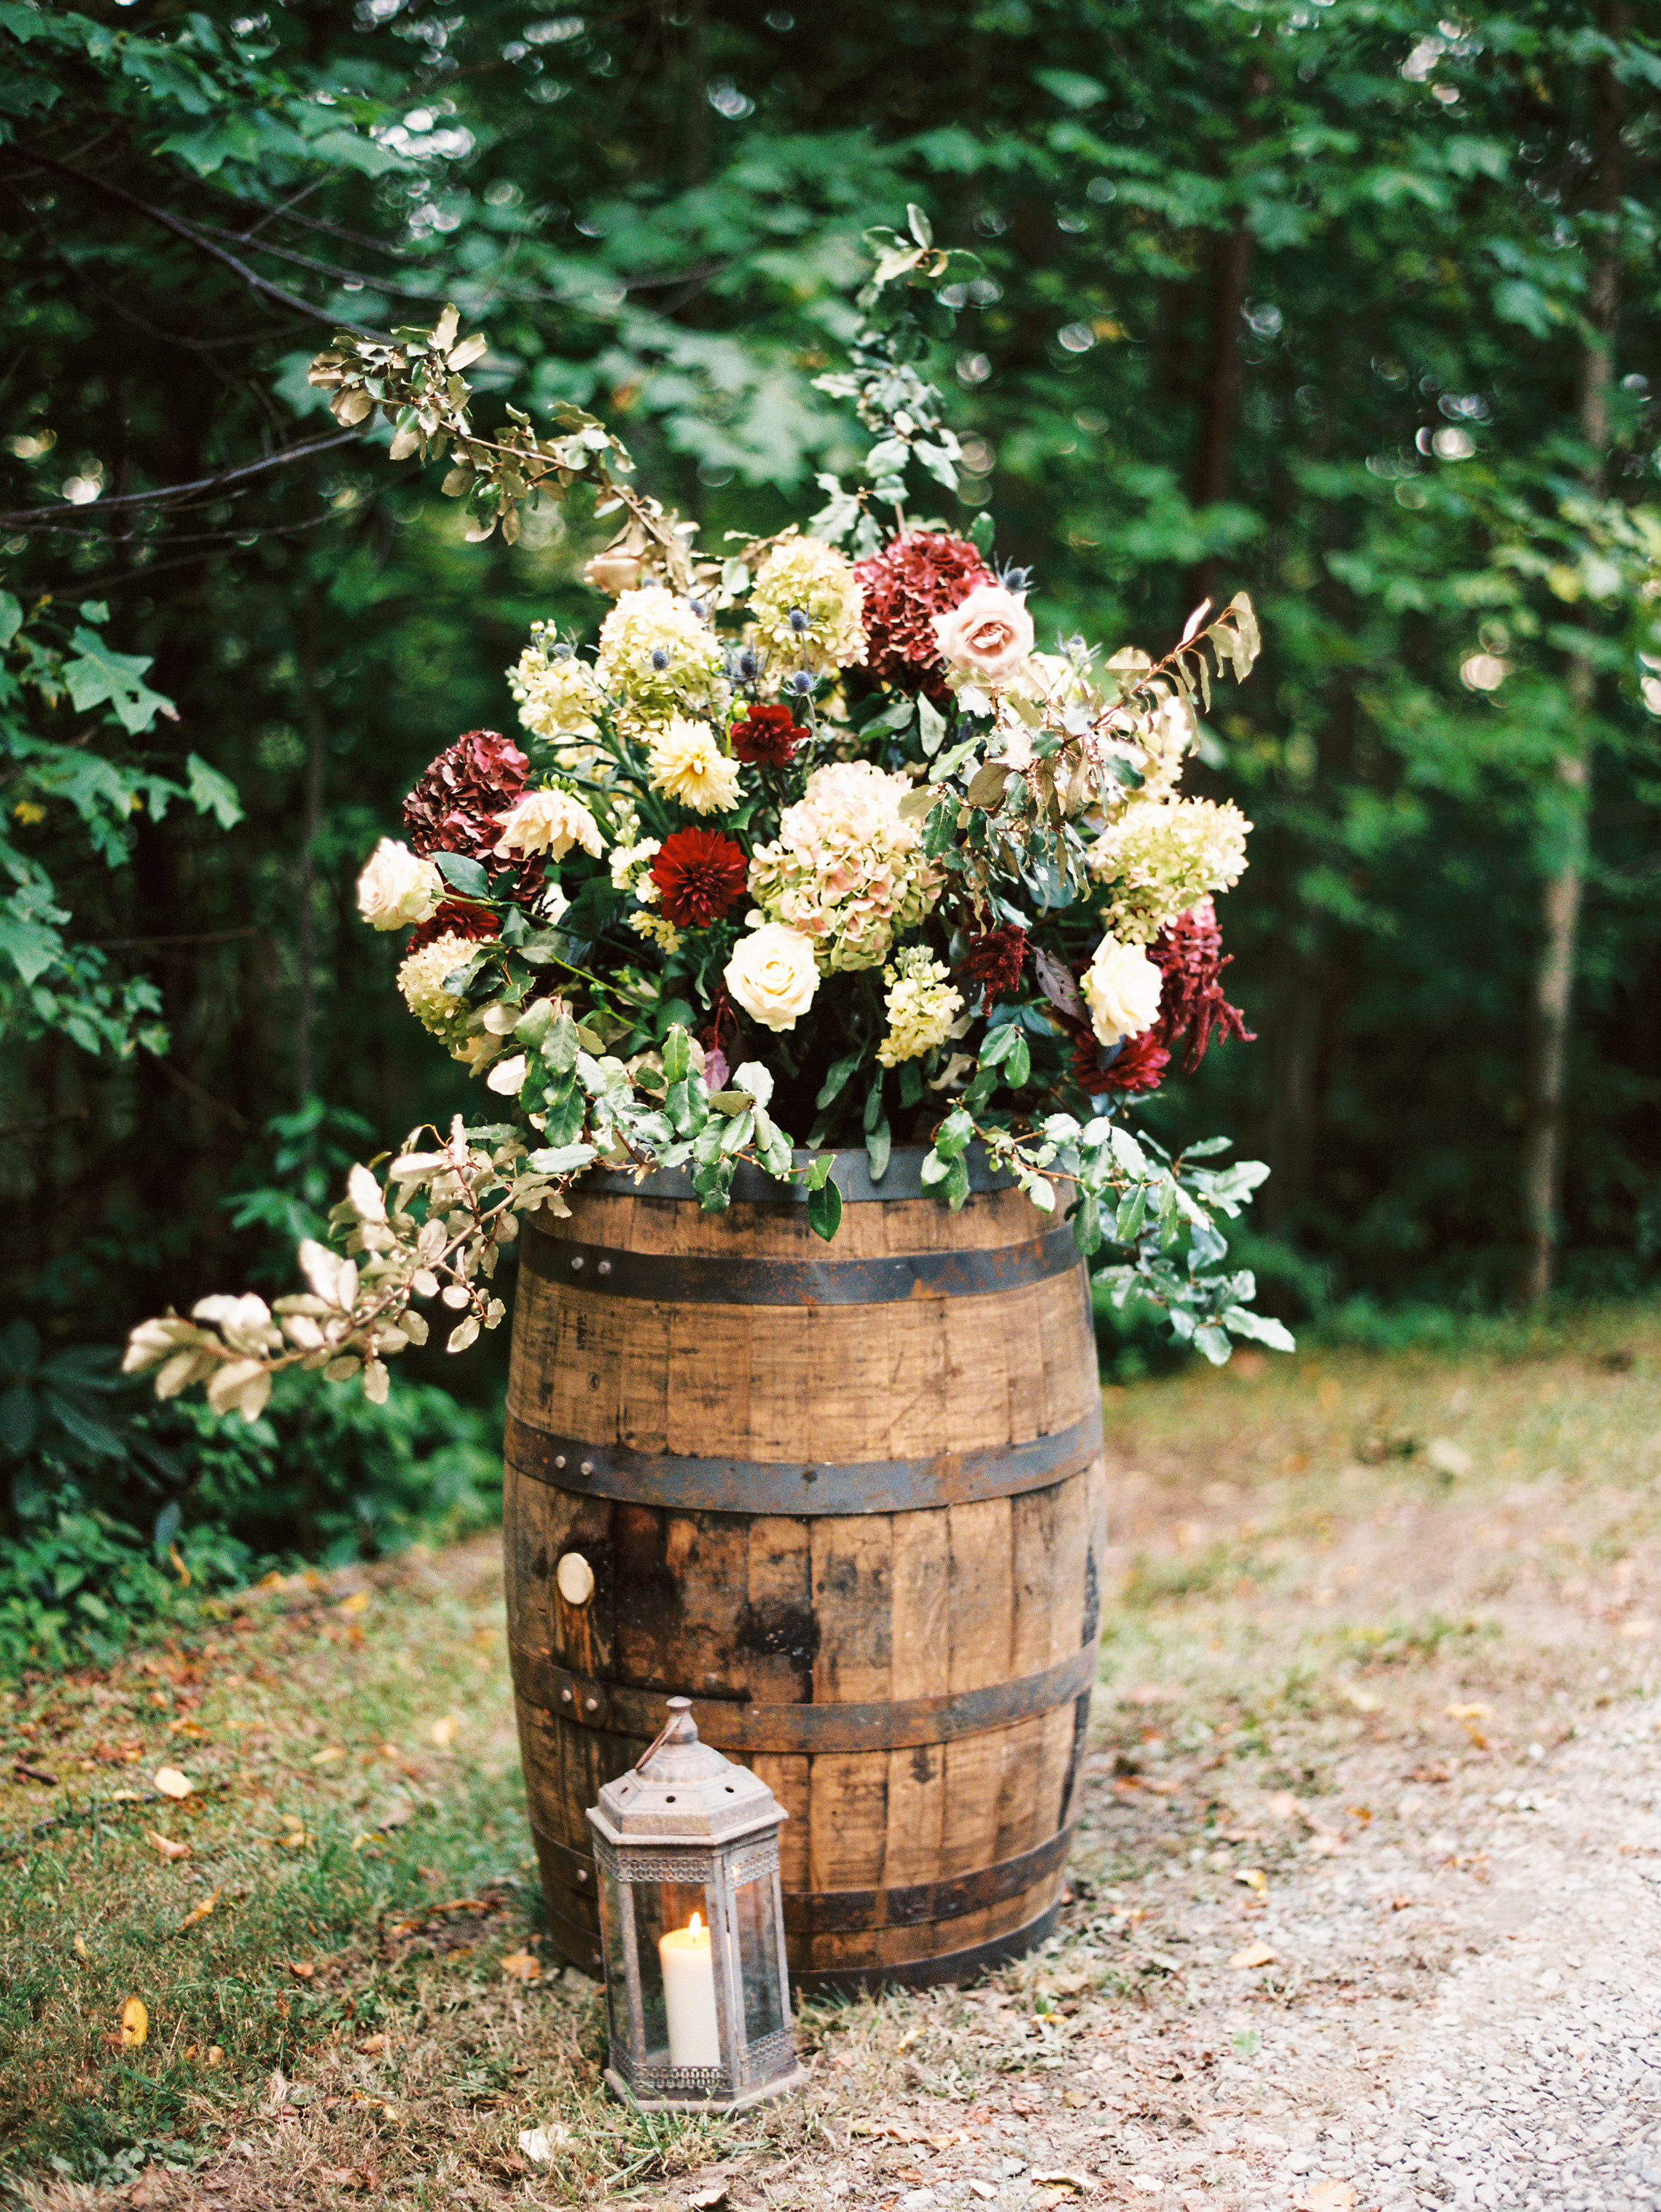 0d9dc-ncmountainhomeweddingfloralarrangementbarrelncmountainhomeweddingfloralarrangementbarrel.jpg